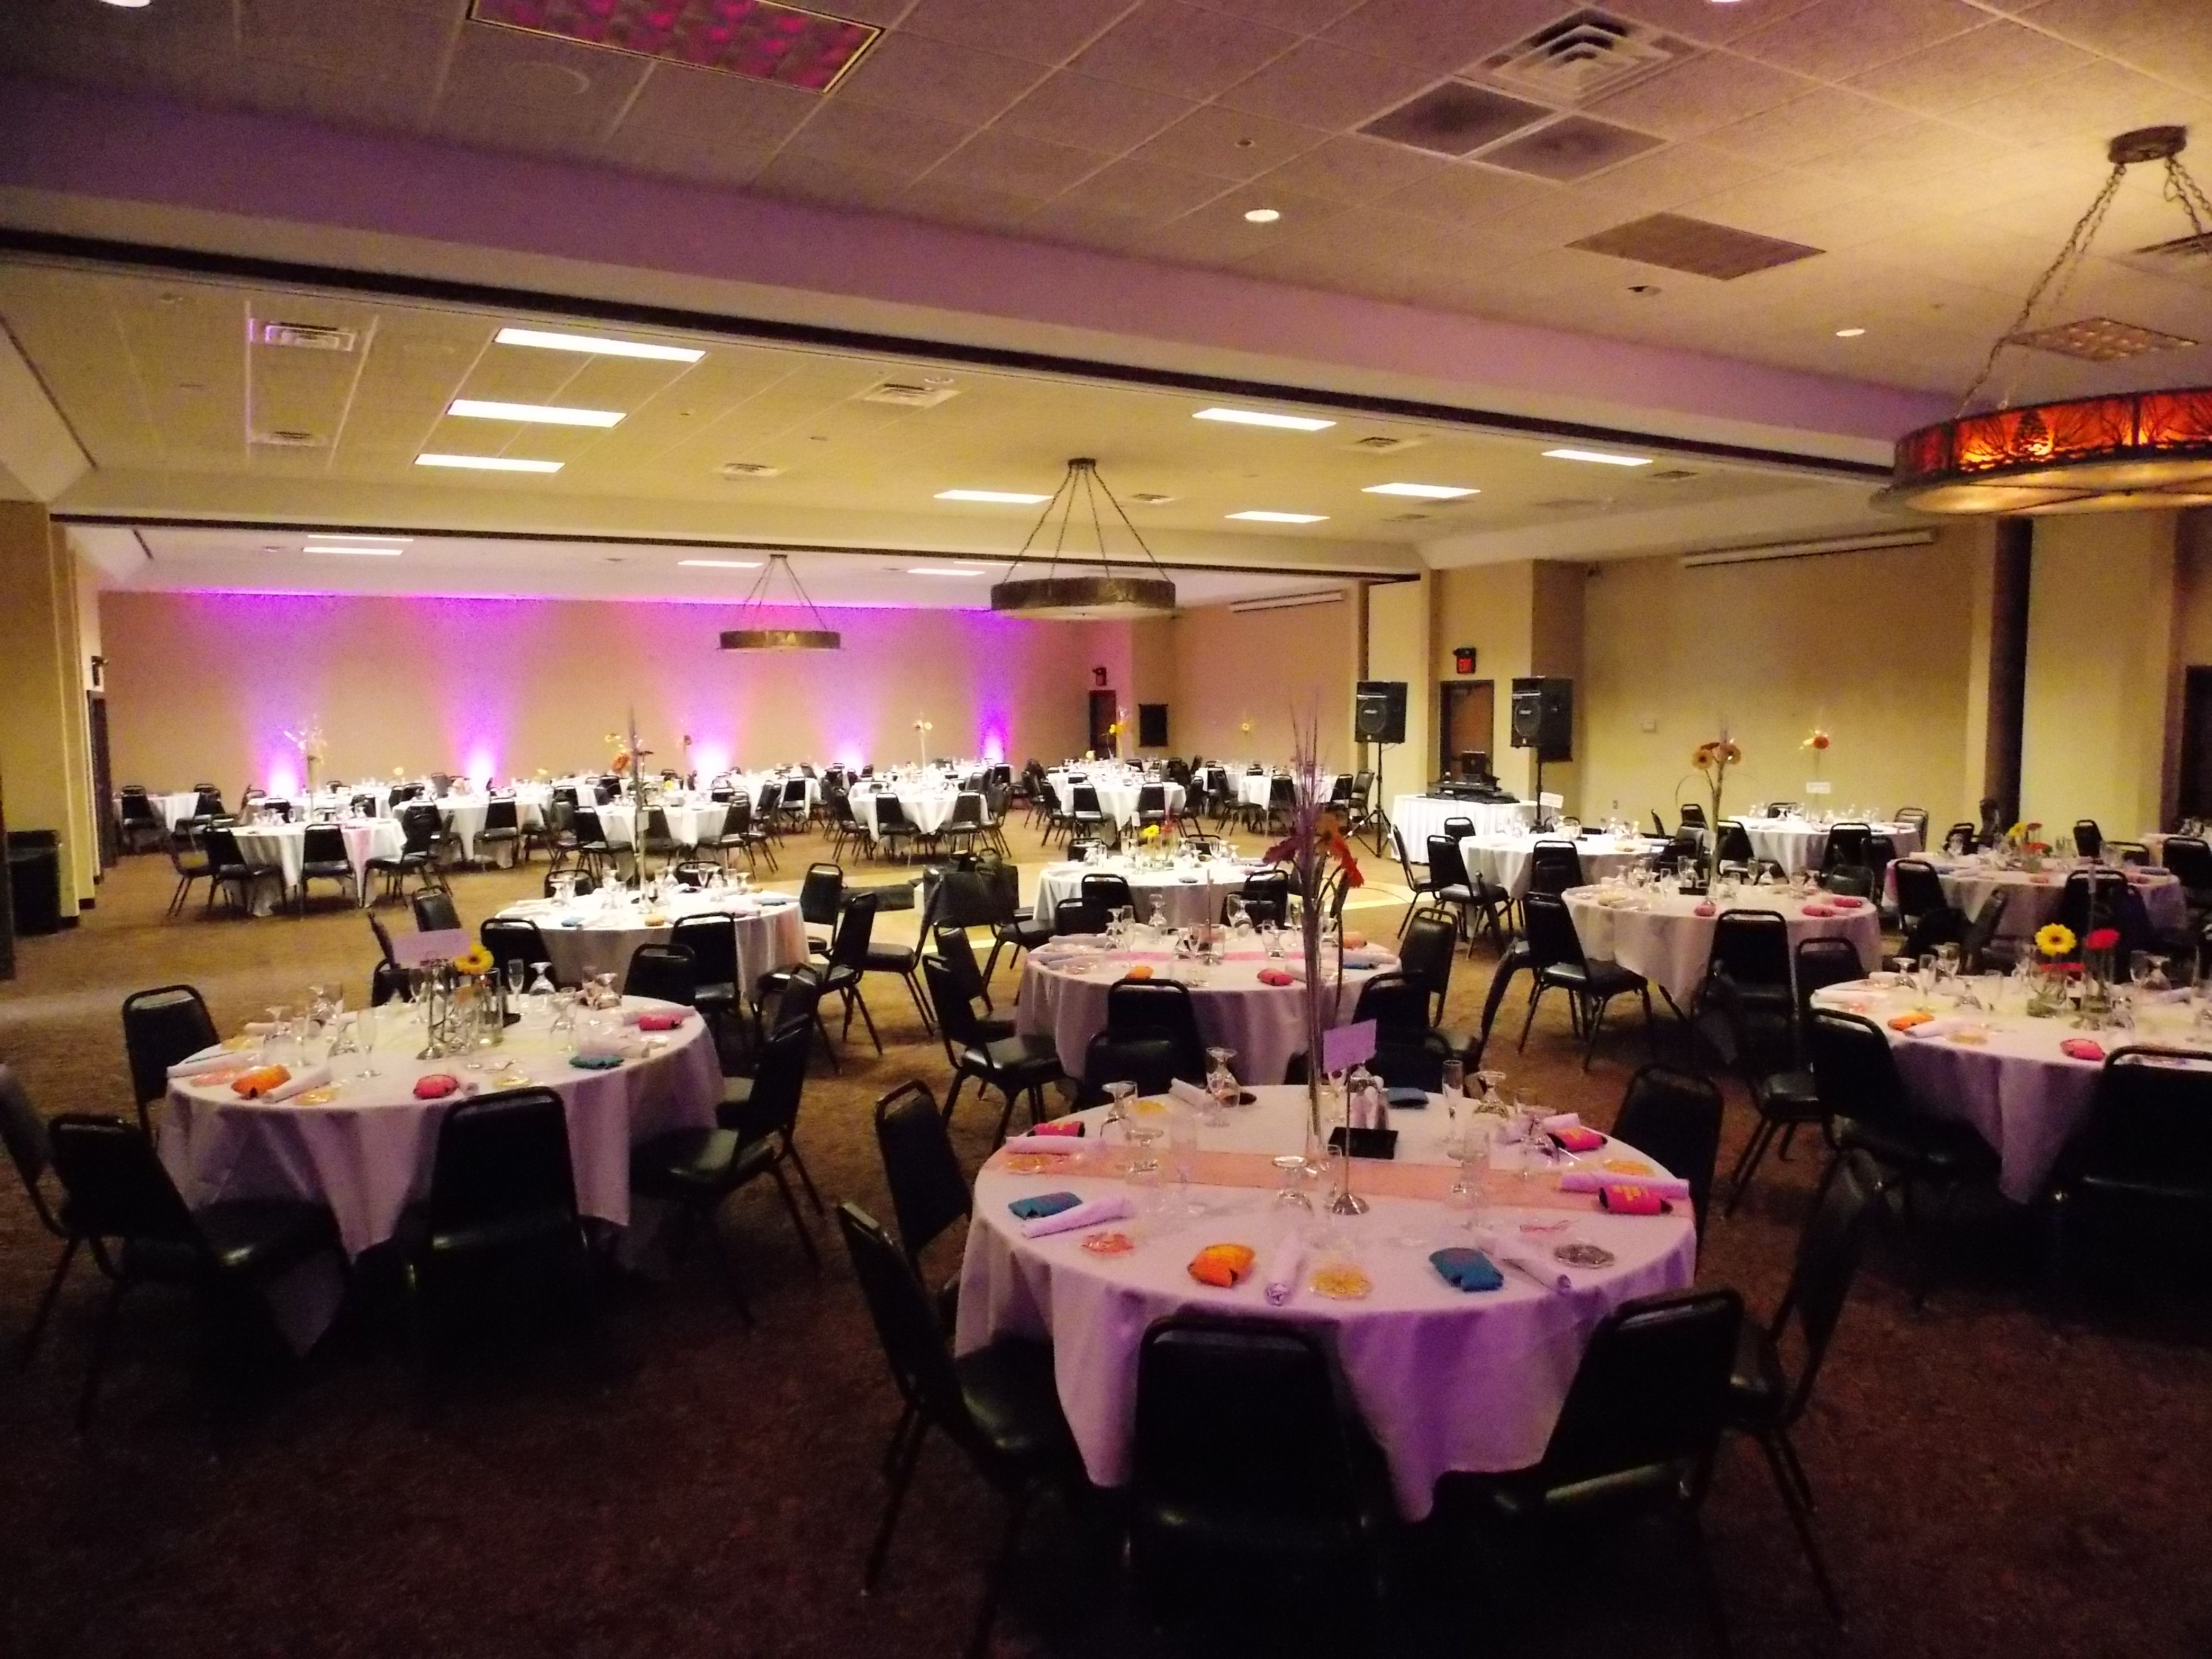 A View Of The Banquet Room At Stoney Creek Inn Moline Illinois Up Lighting By Marske Music Productions Www Marskemusic Com Moline Banquet Quad Cities